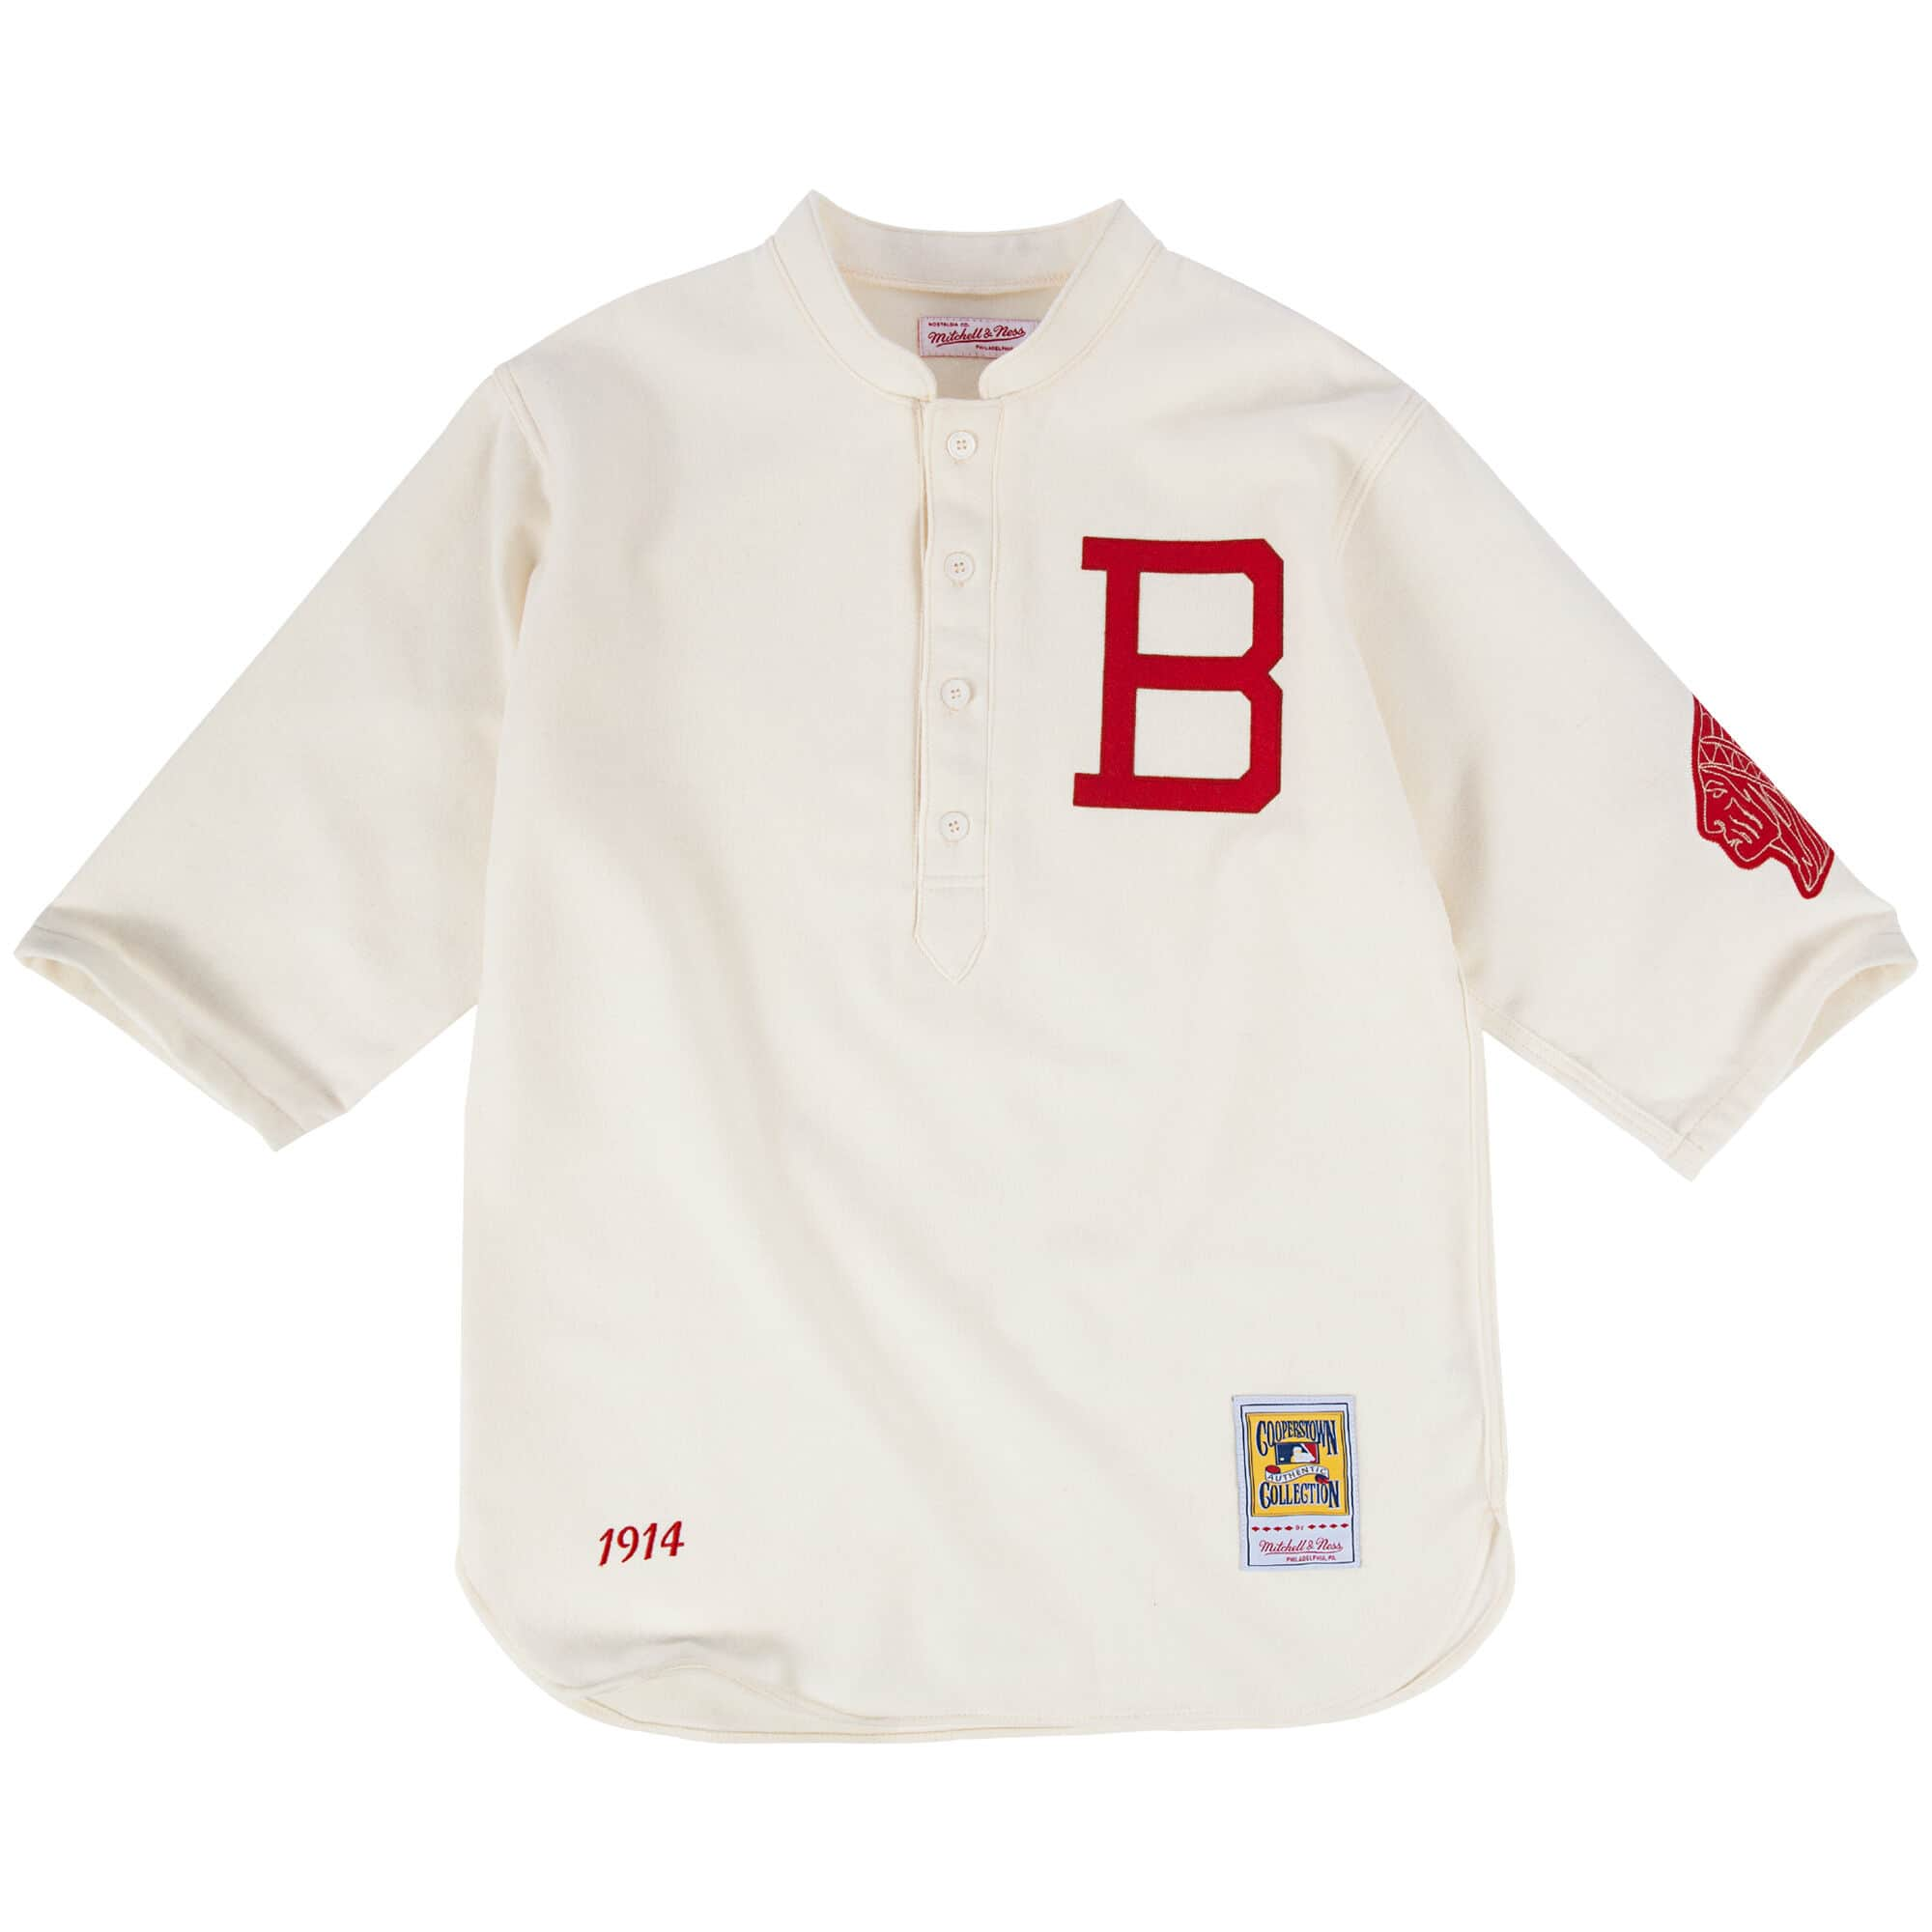 1914 Authentic Jersey Boston Braves